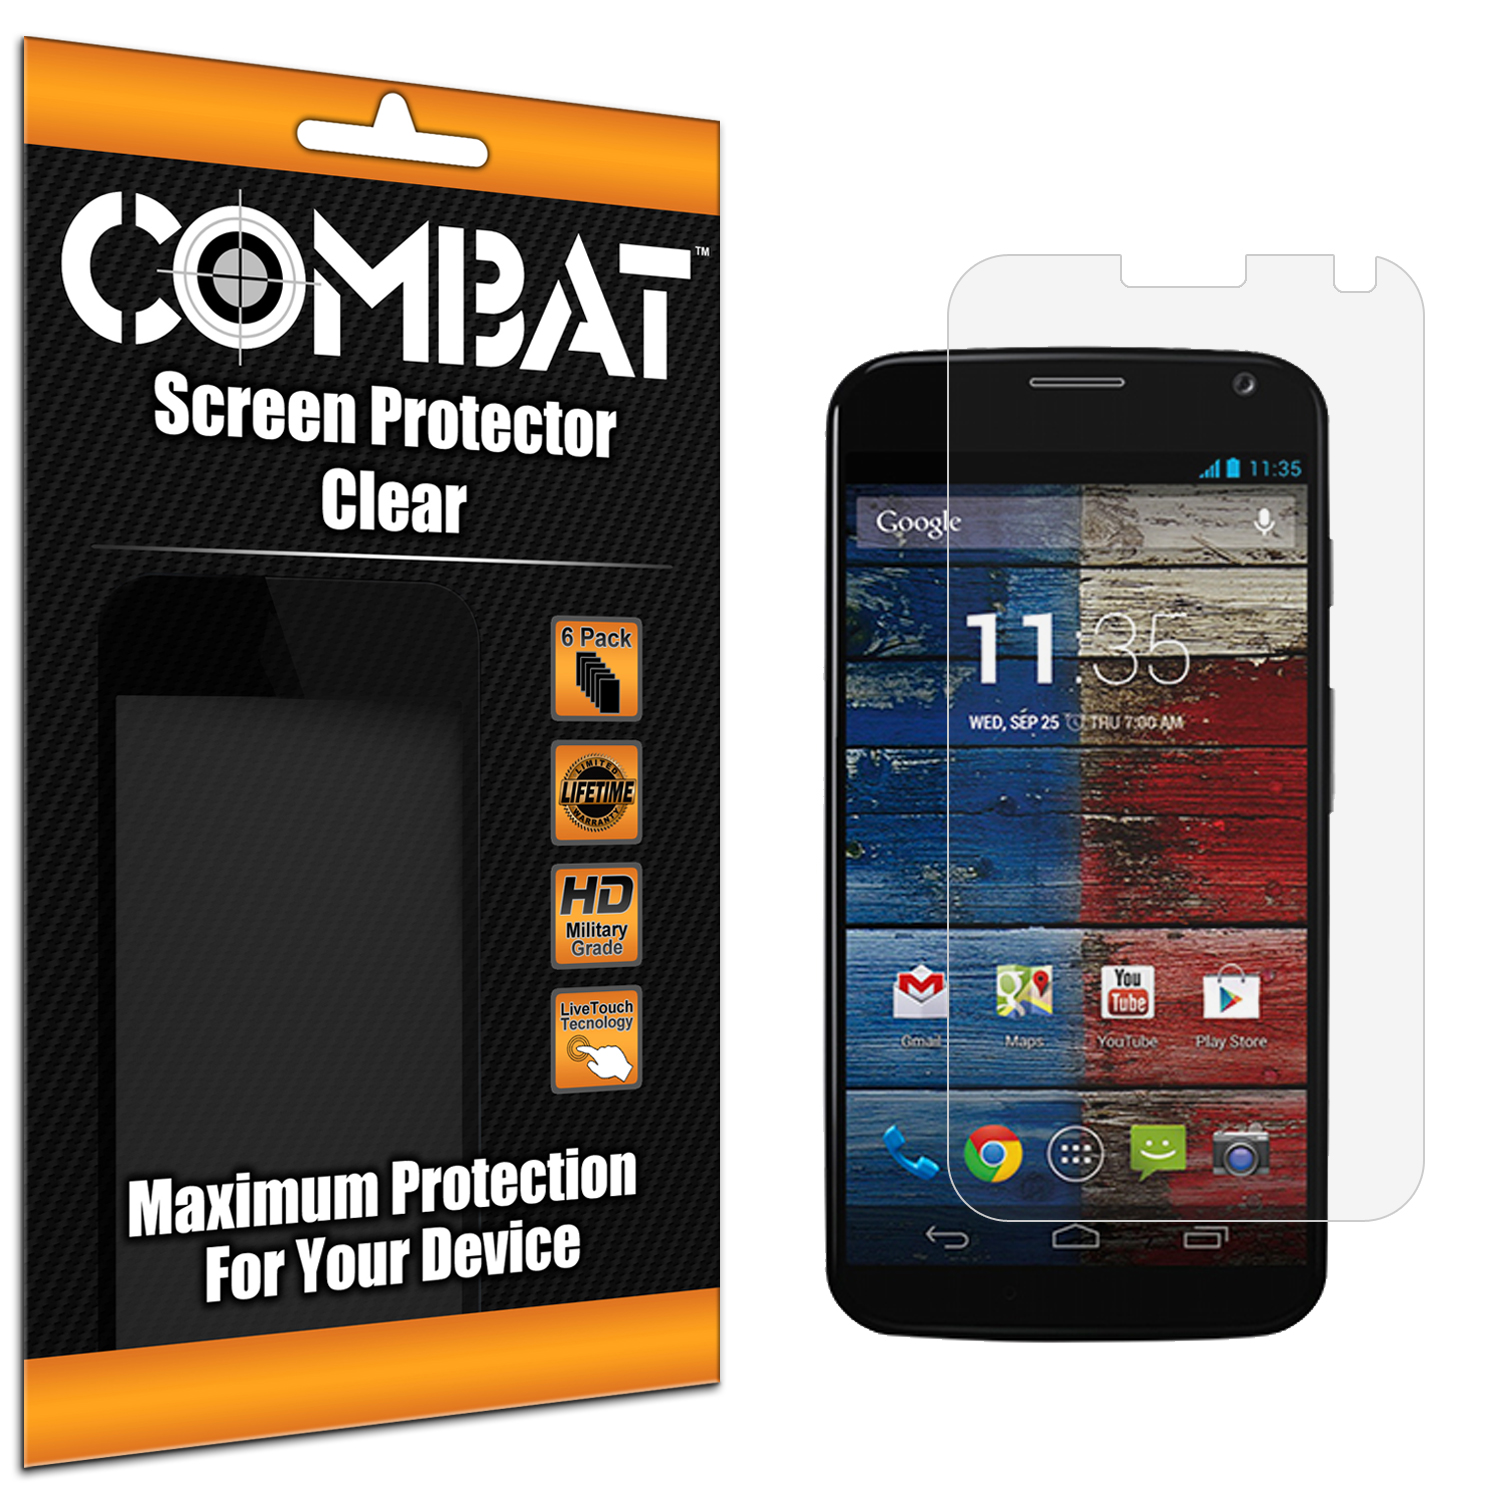 Motorola Moto X Combat 6 Pack HD Clear Screen Protector